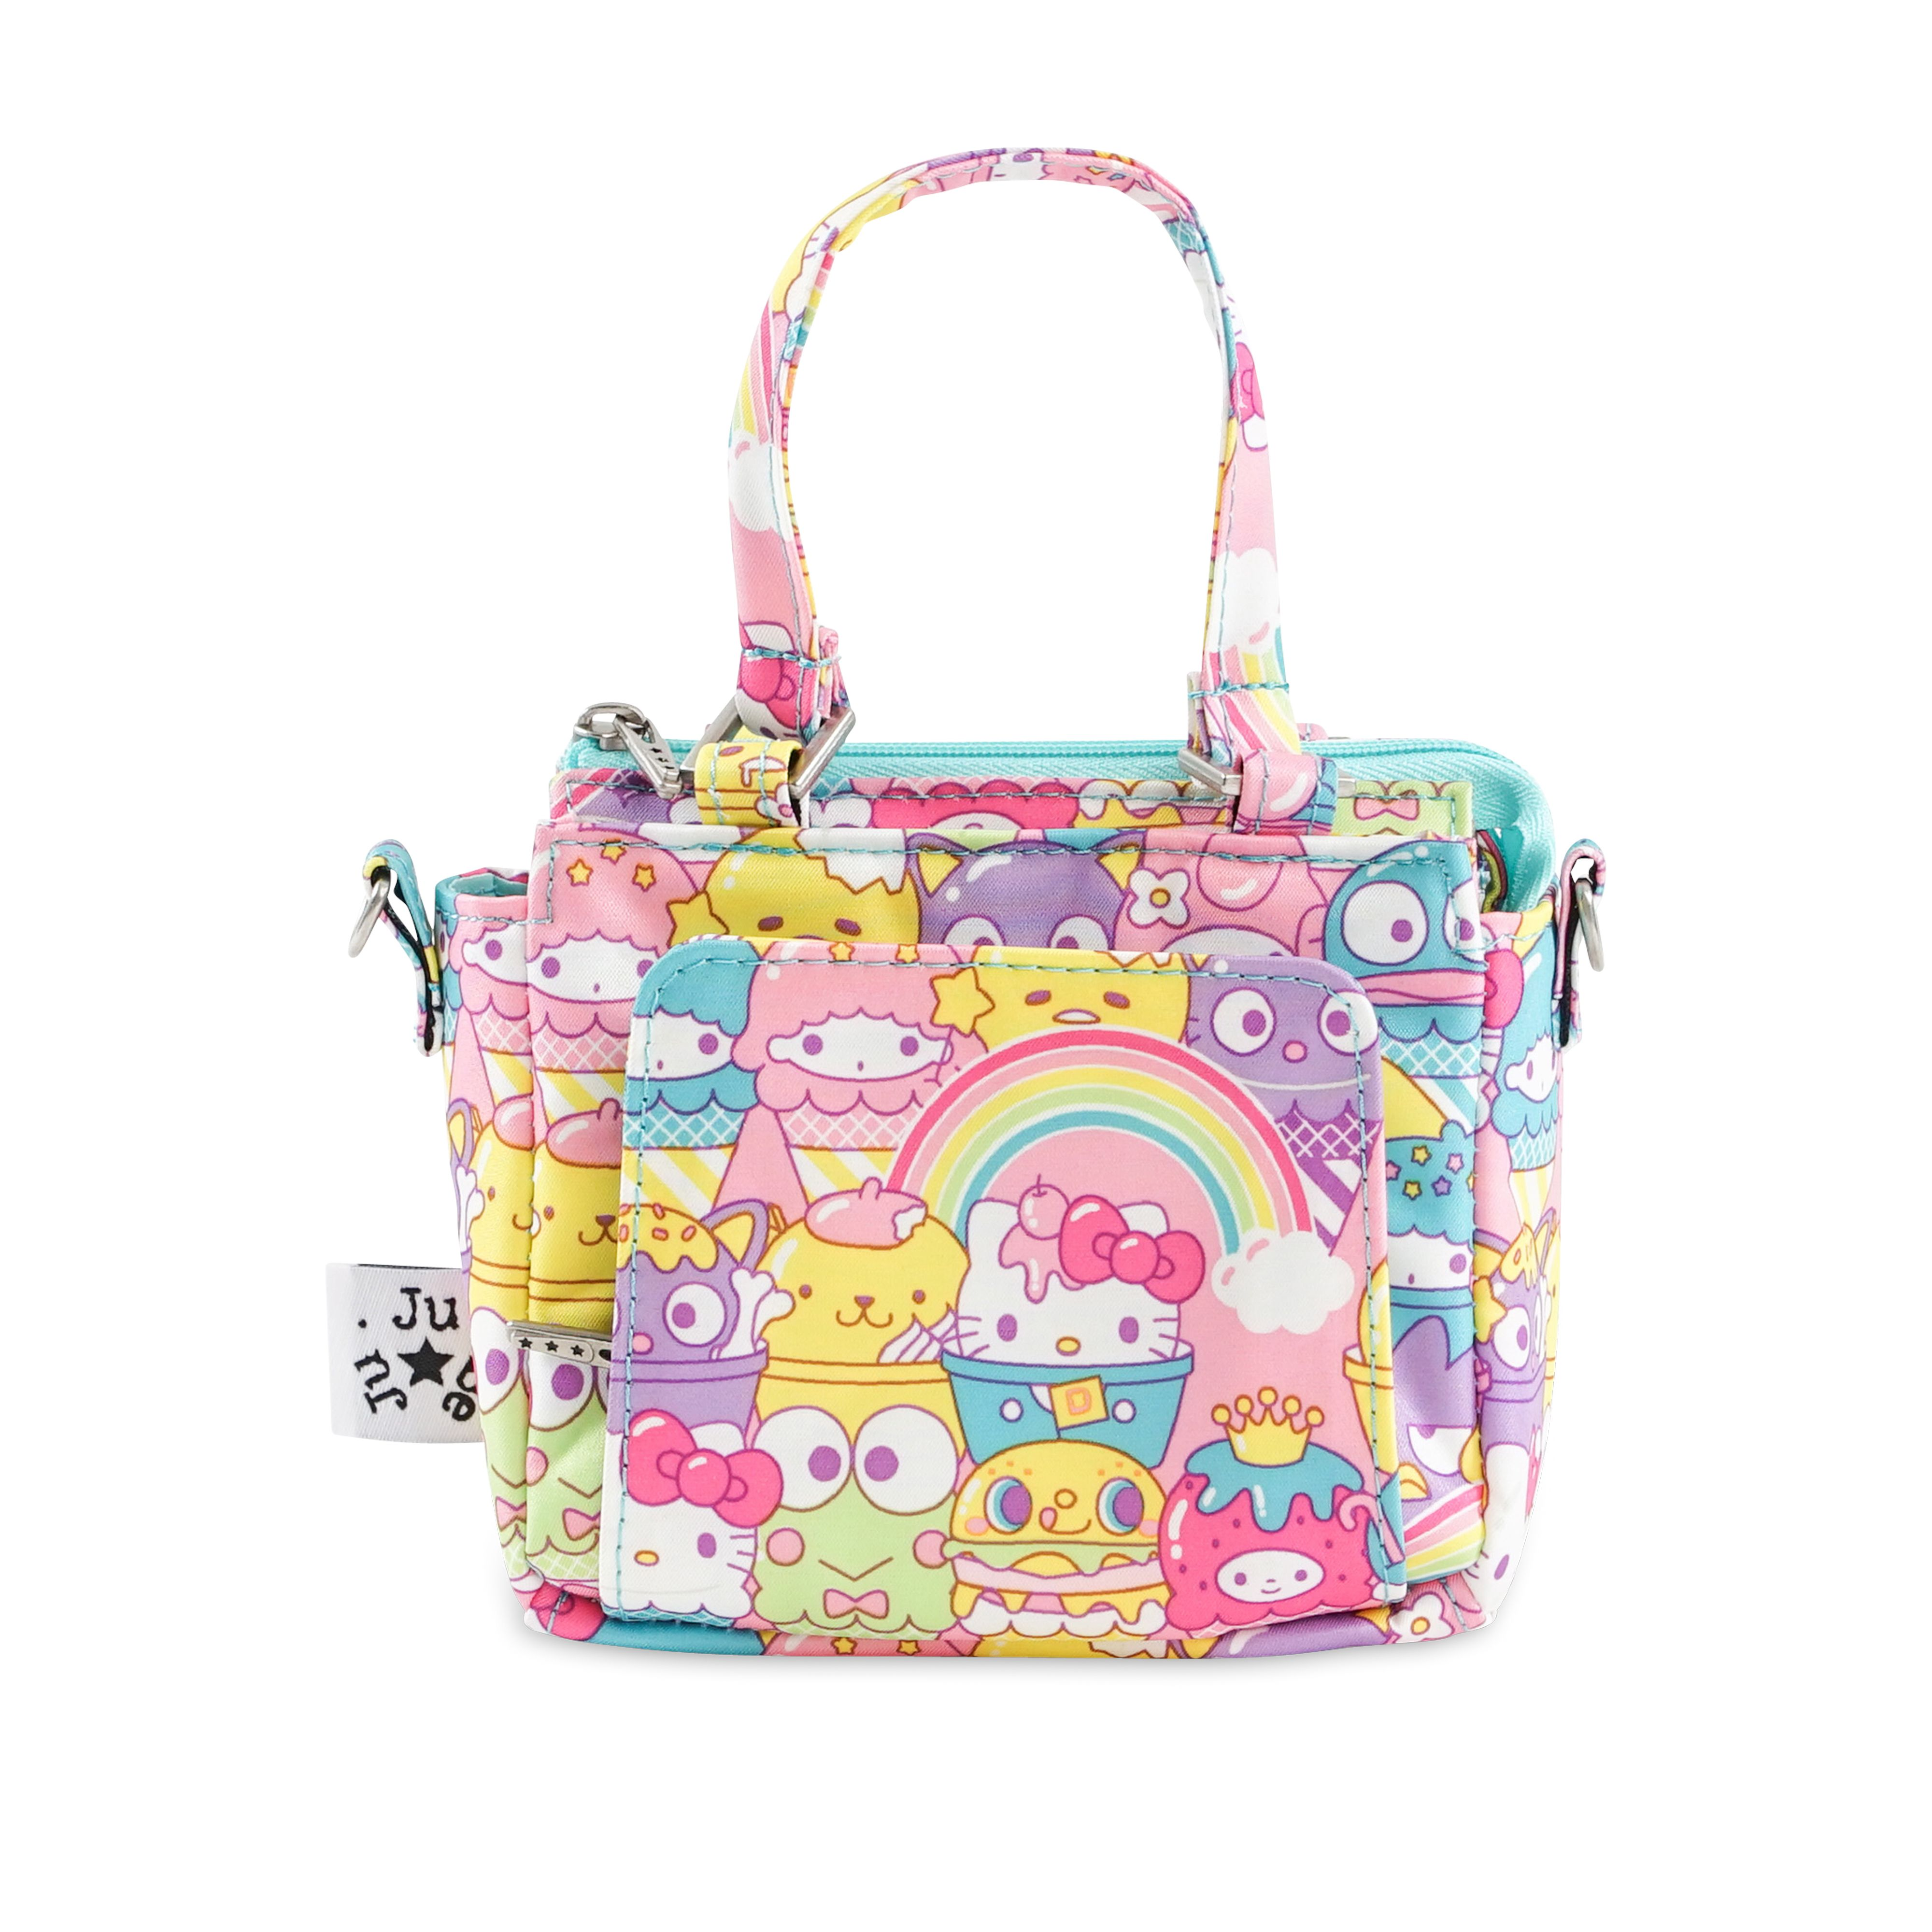 e81ef4eda Hello Sanrio Sweets Itty Bitty Be Hello Sanrio, Cute Little Things, Ju Ju,